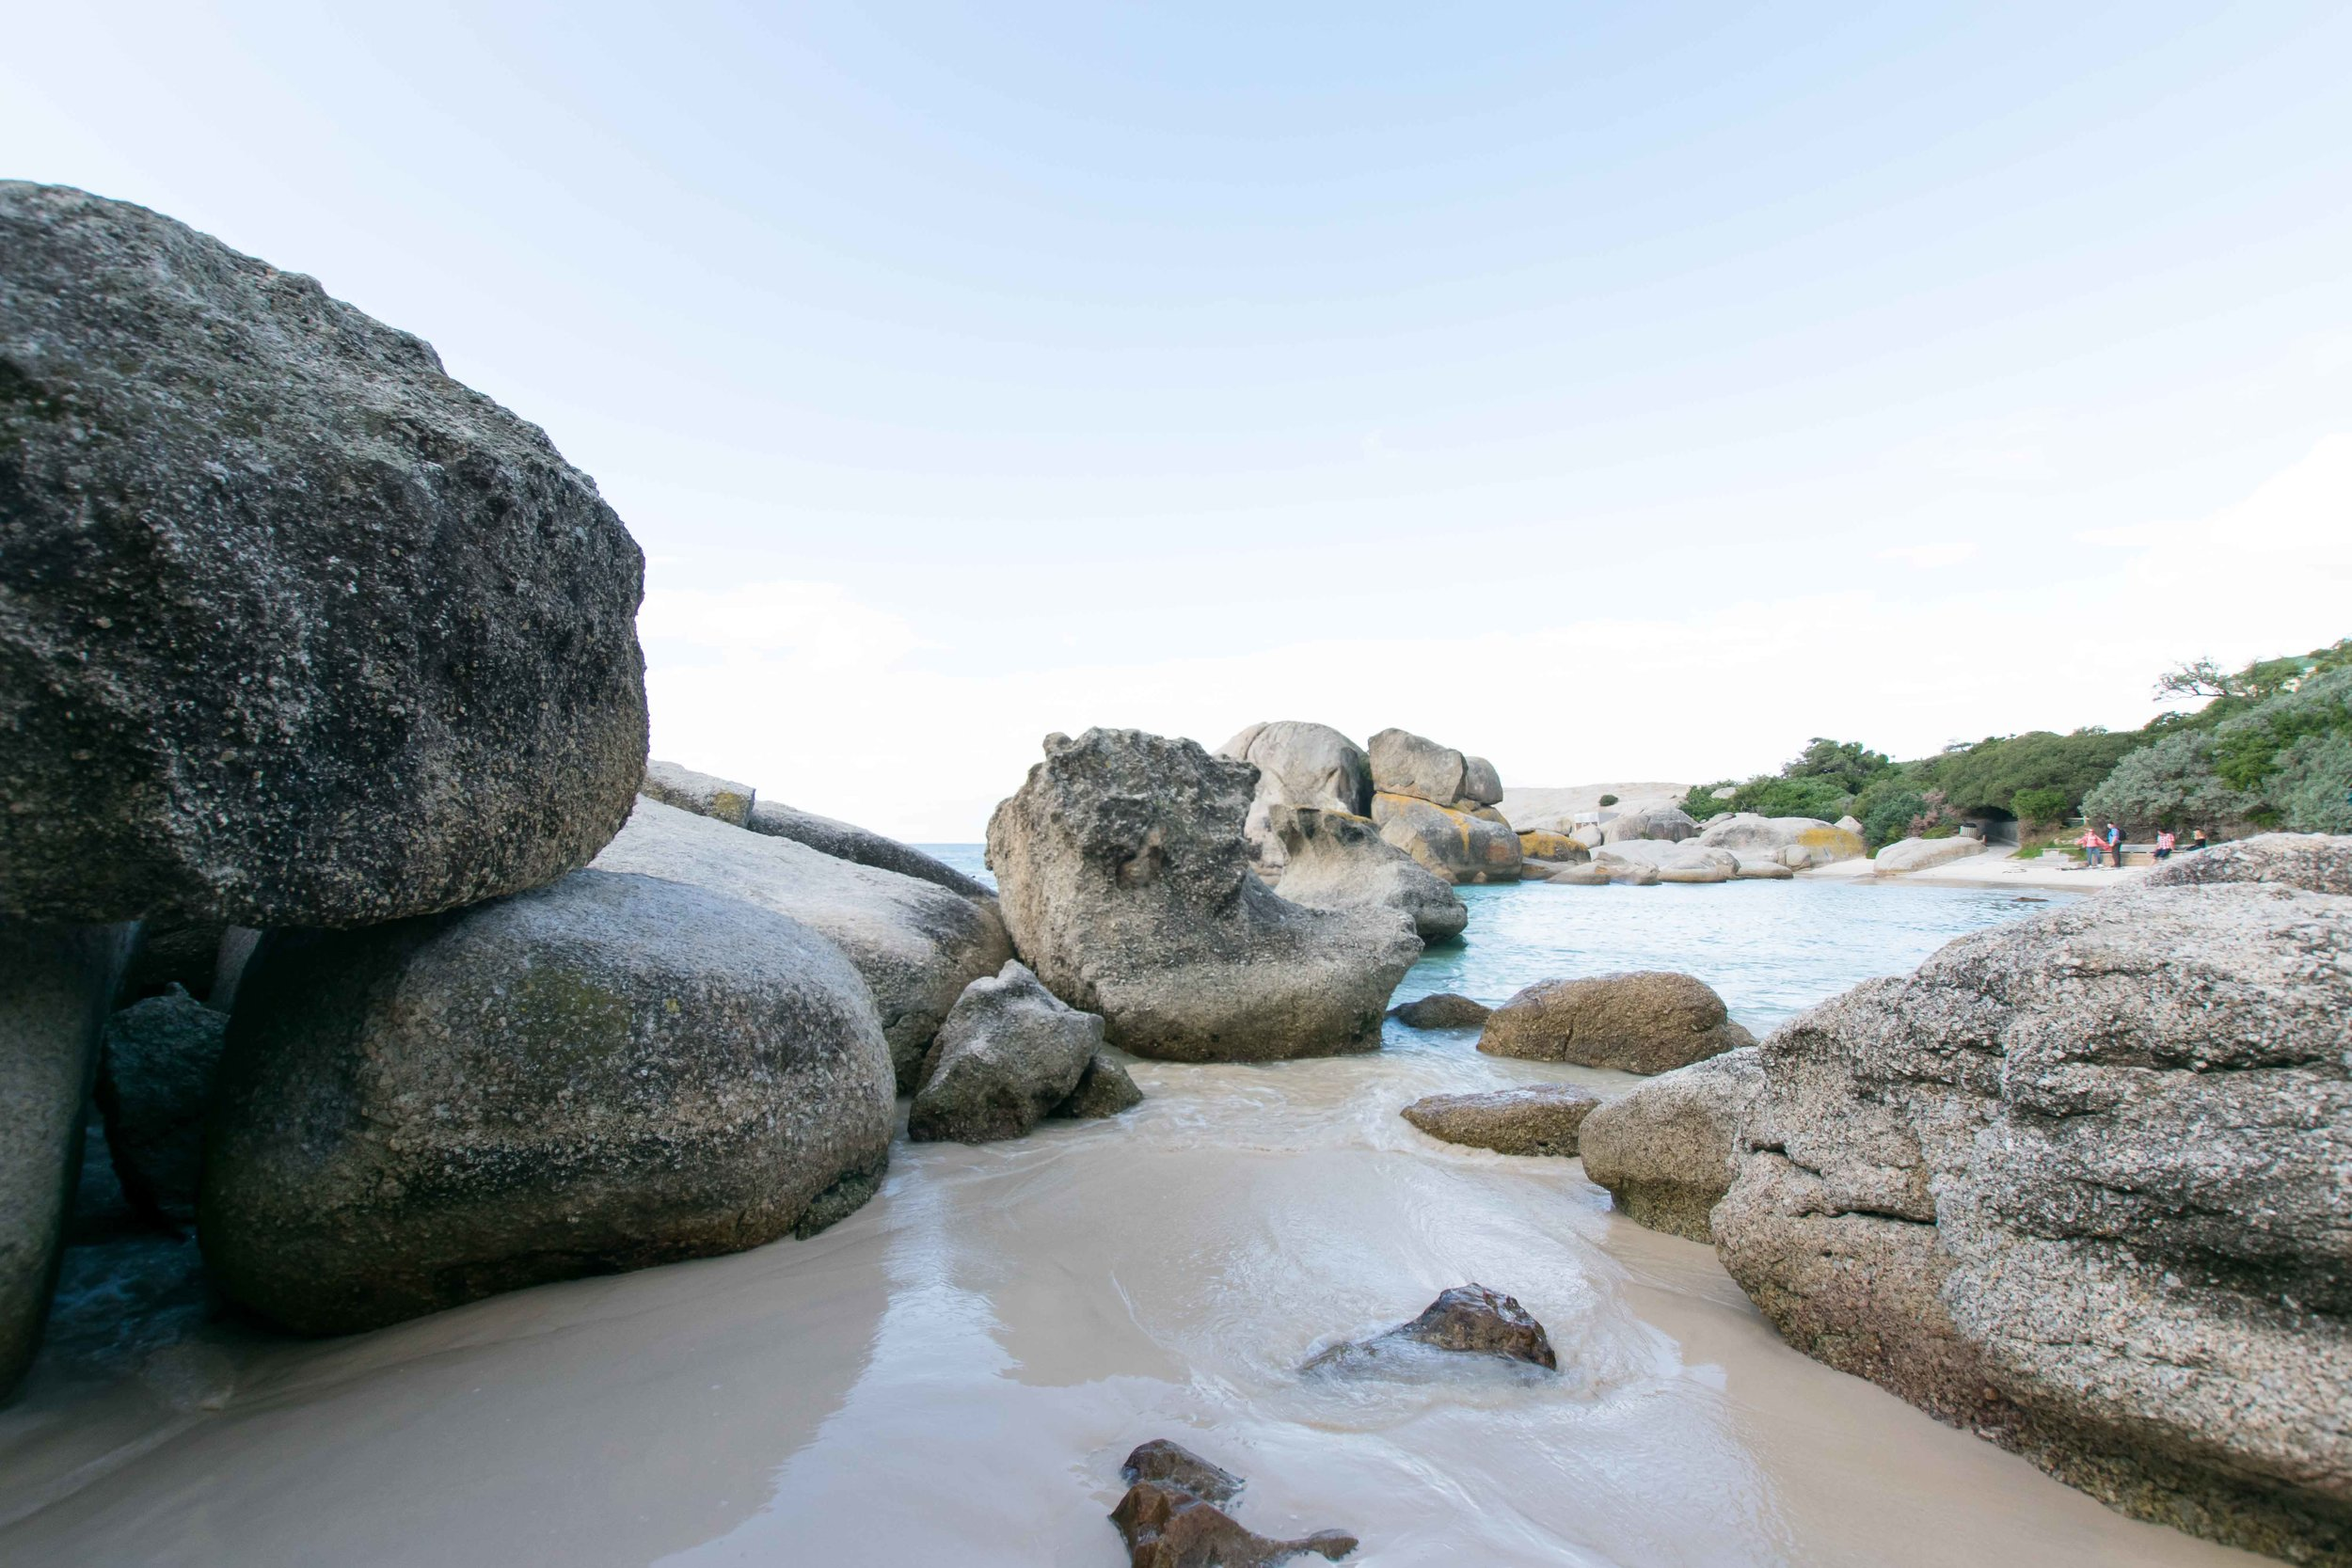 Boulder beach is the best place in South Africa (near Cape Town) to see the penguins.